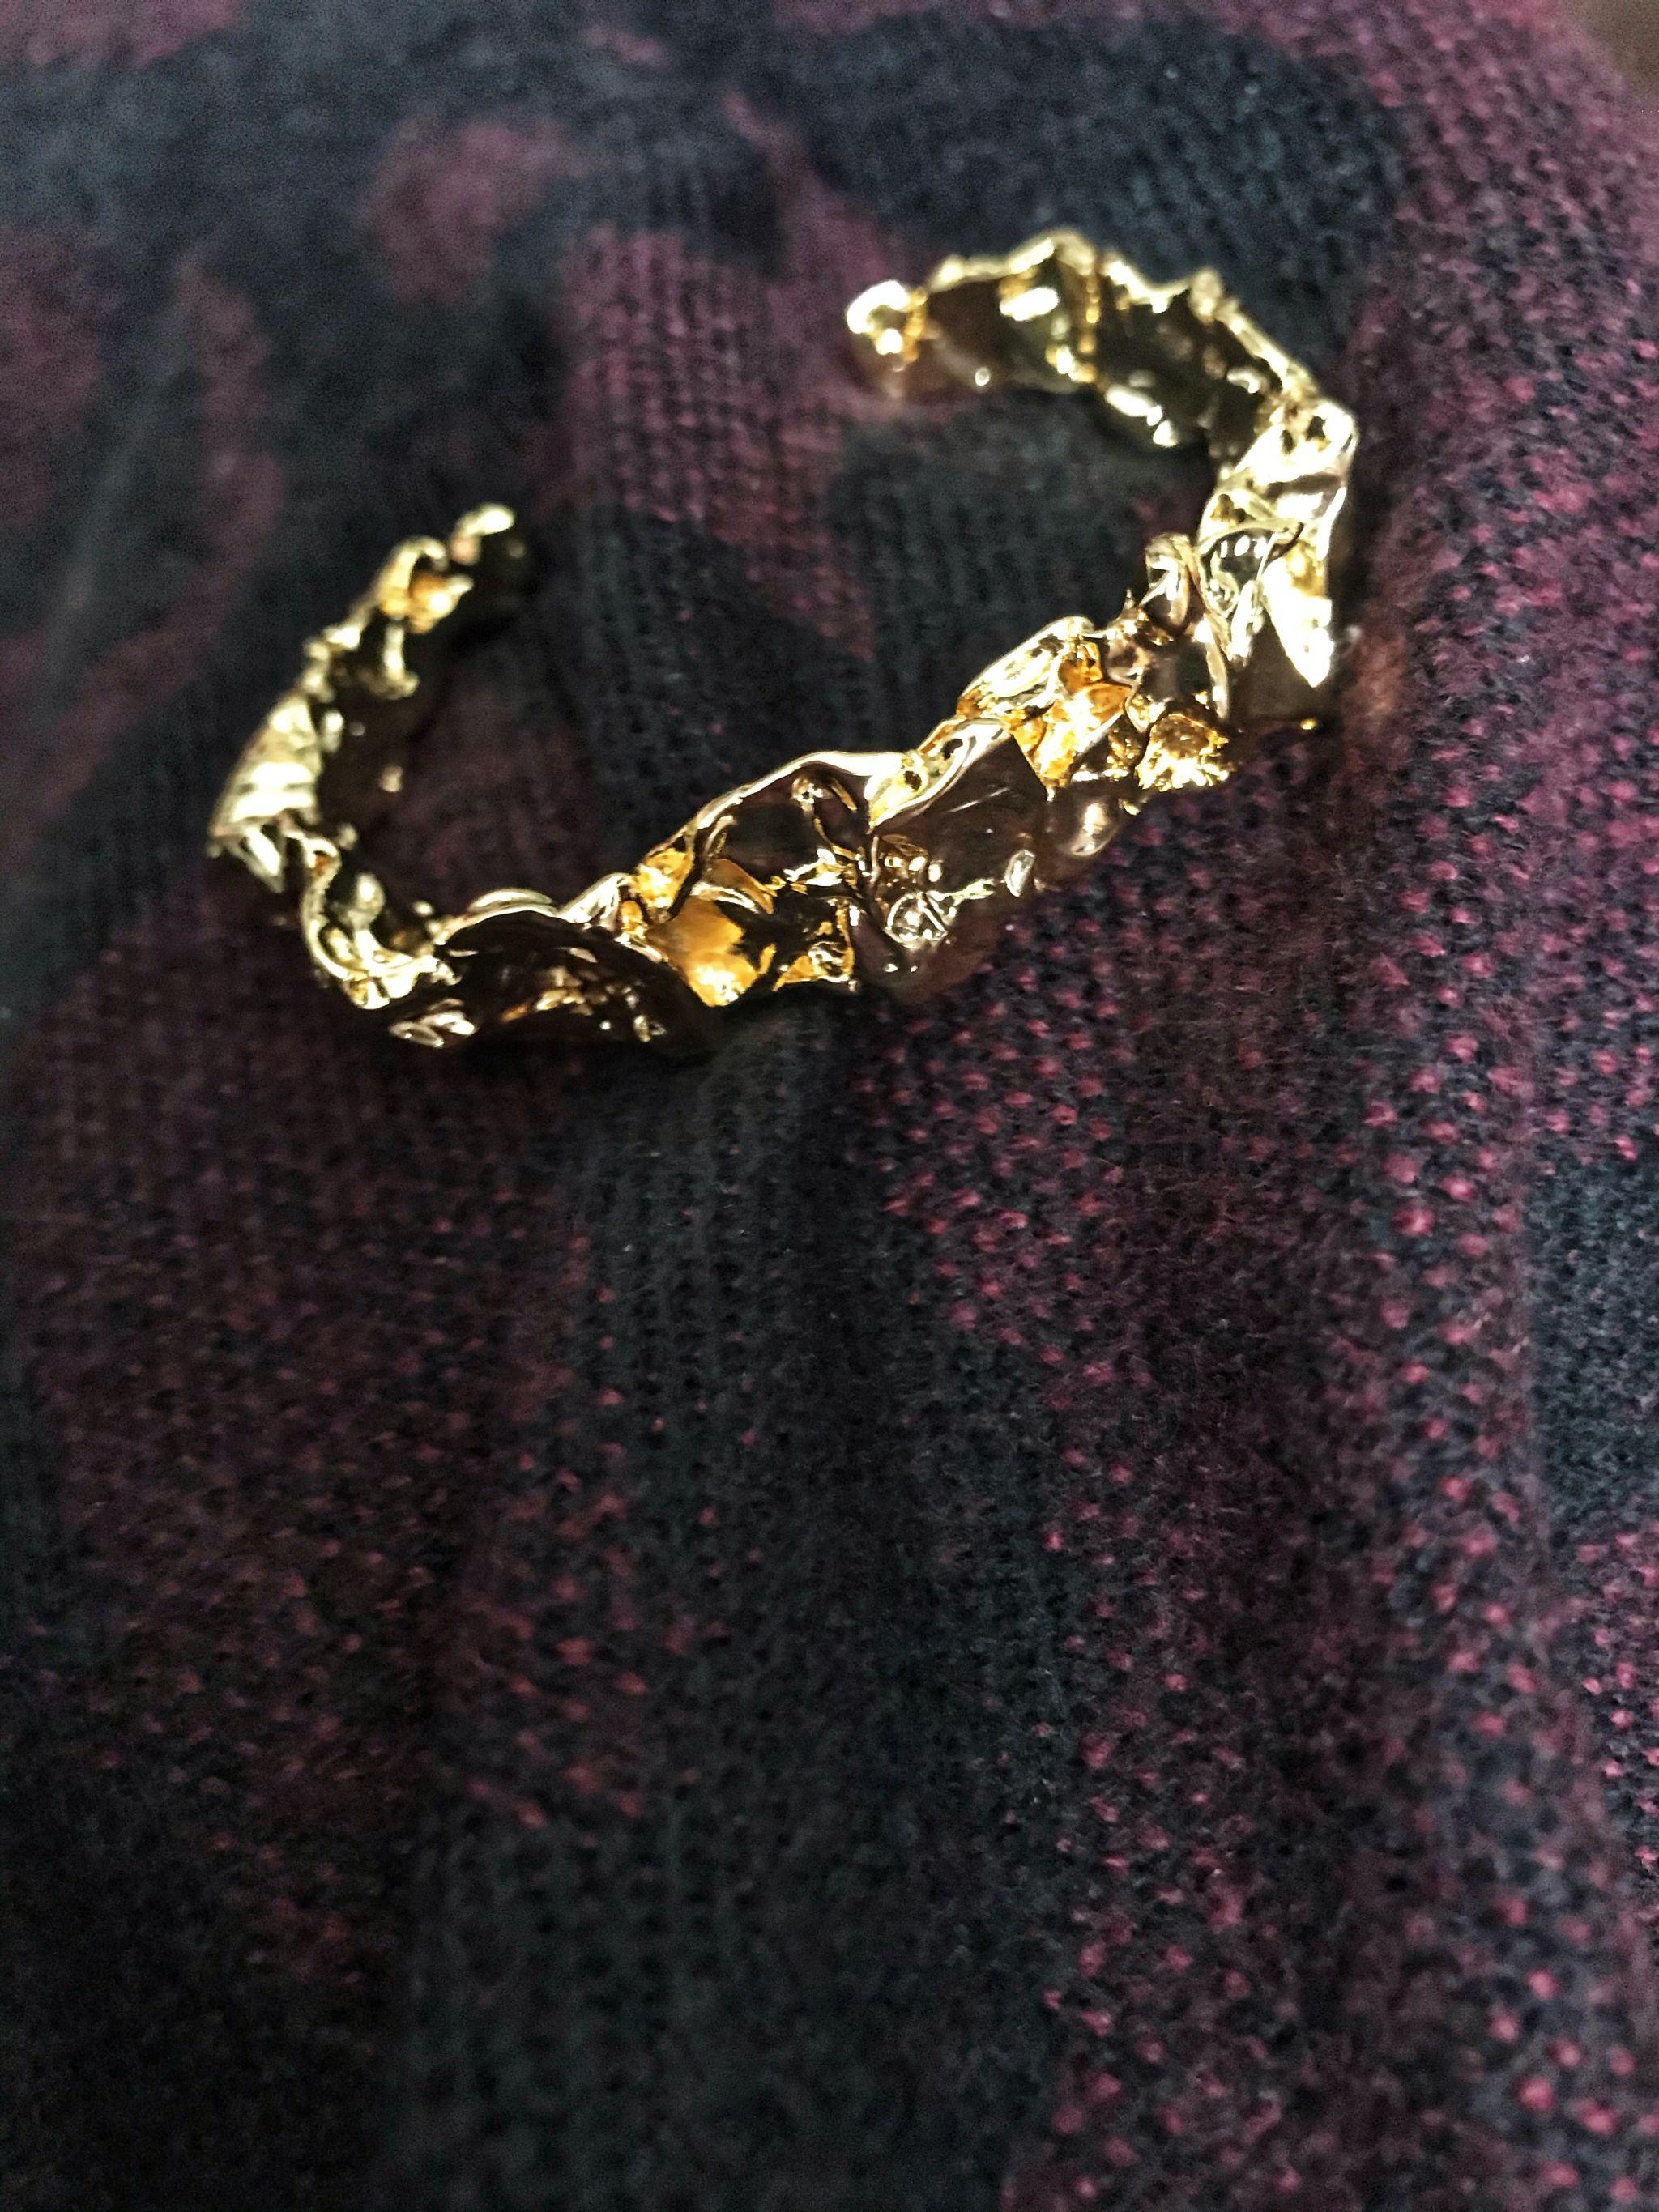 Amber Sceats Emery Cuff - Winter Curateur Box Review